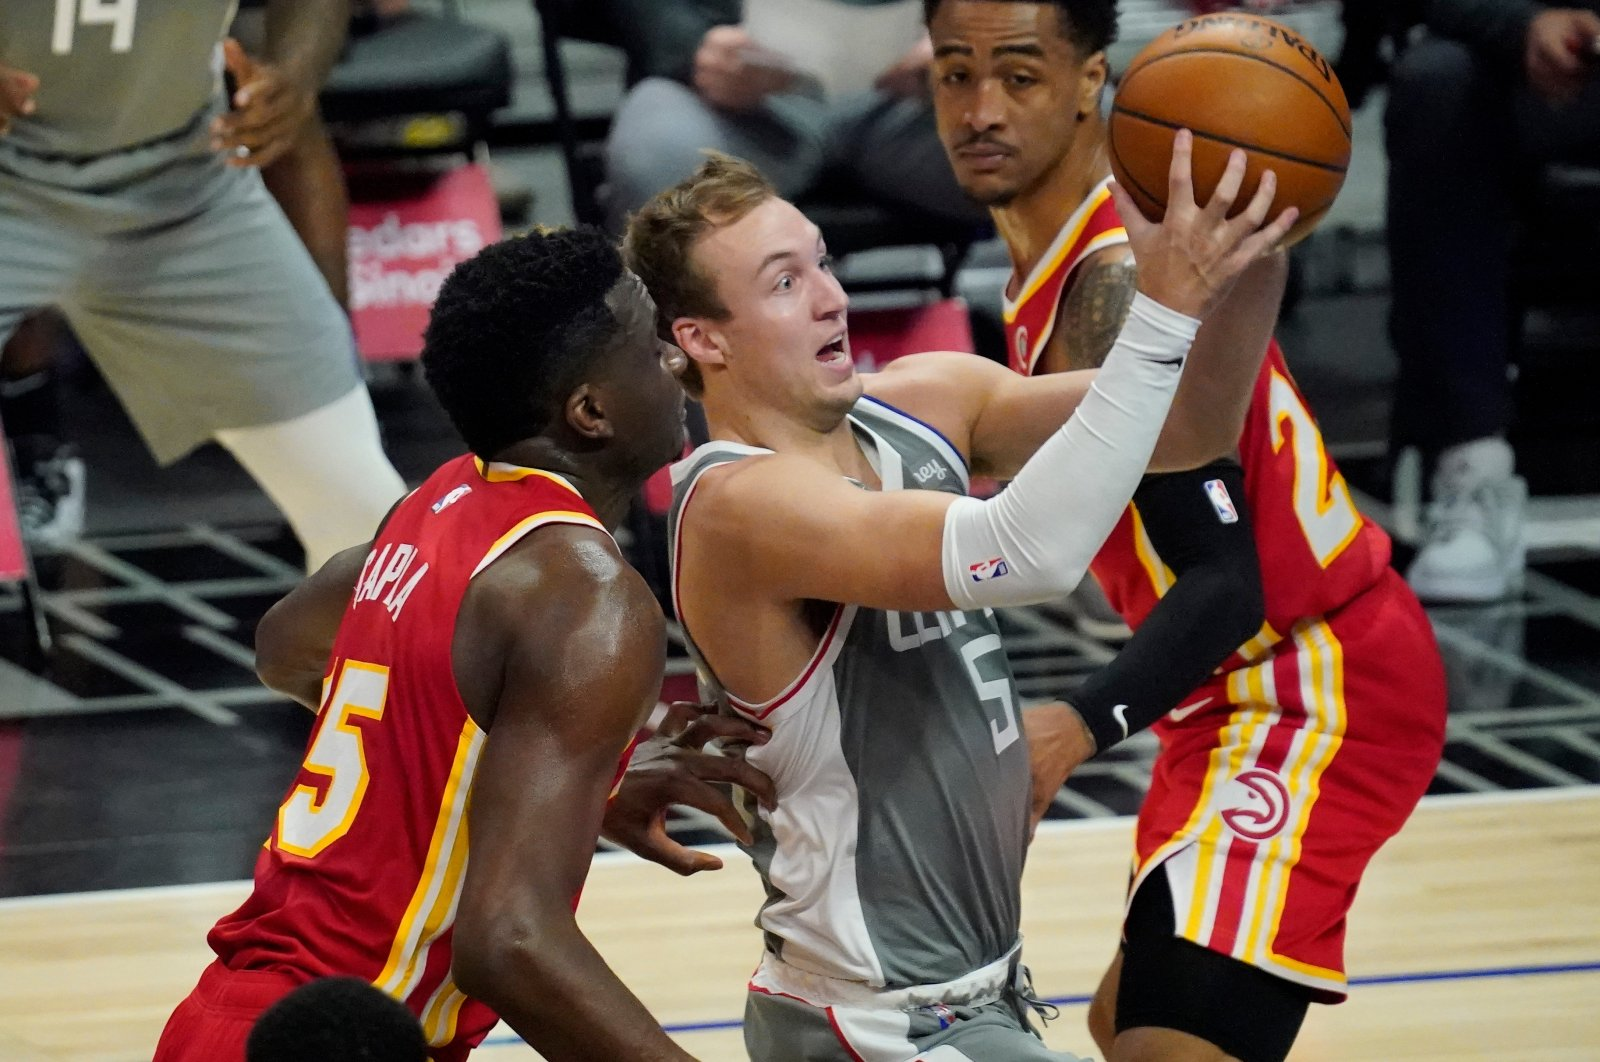 LA Clippers guard Luke Kennard (C) moves to the basket past Atlanta Hawks center Clint Capela (L) and forward John Collins (R) during an NBA match at Staples Center, Los Angeles, California, March 22, 2021. (Reuters Photo)